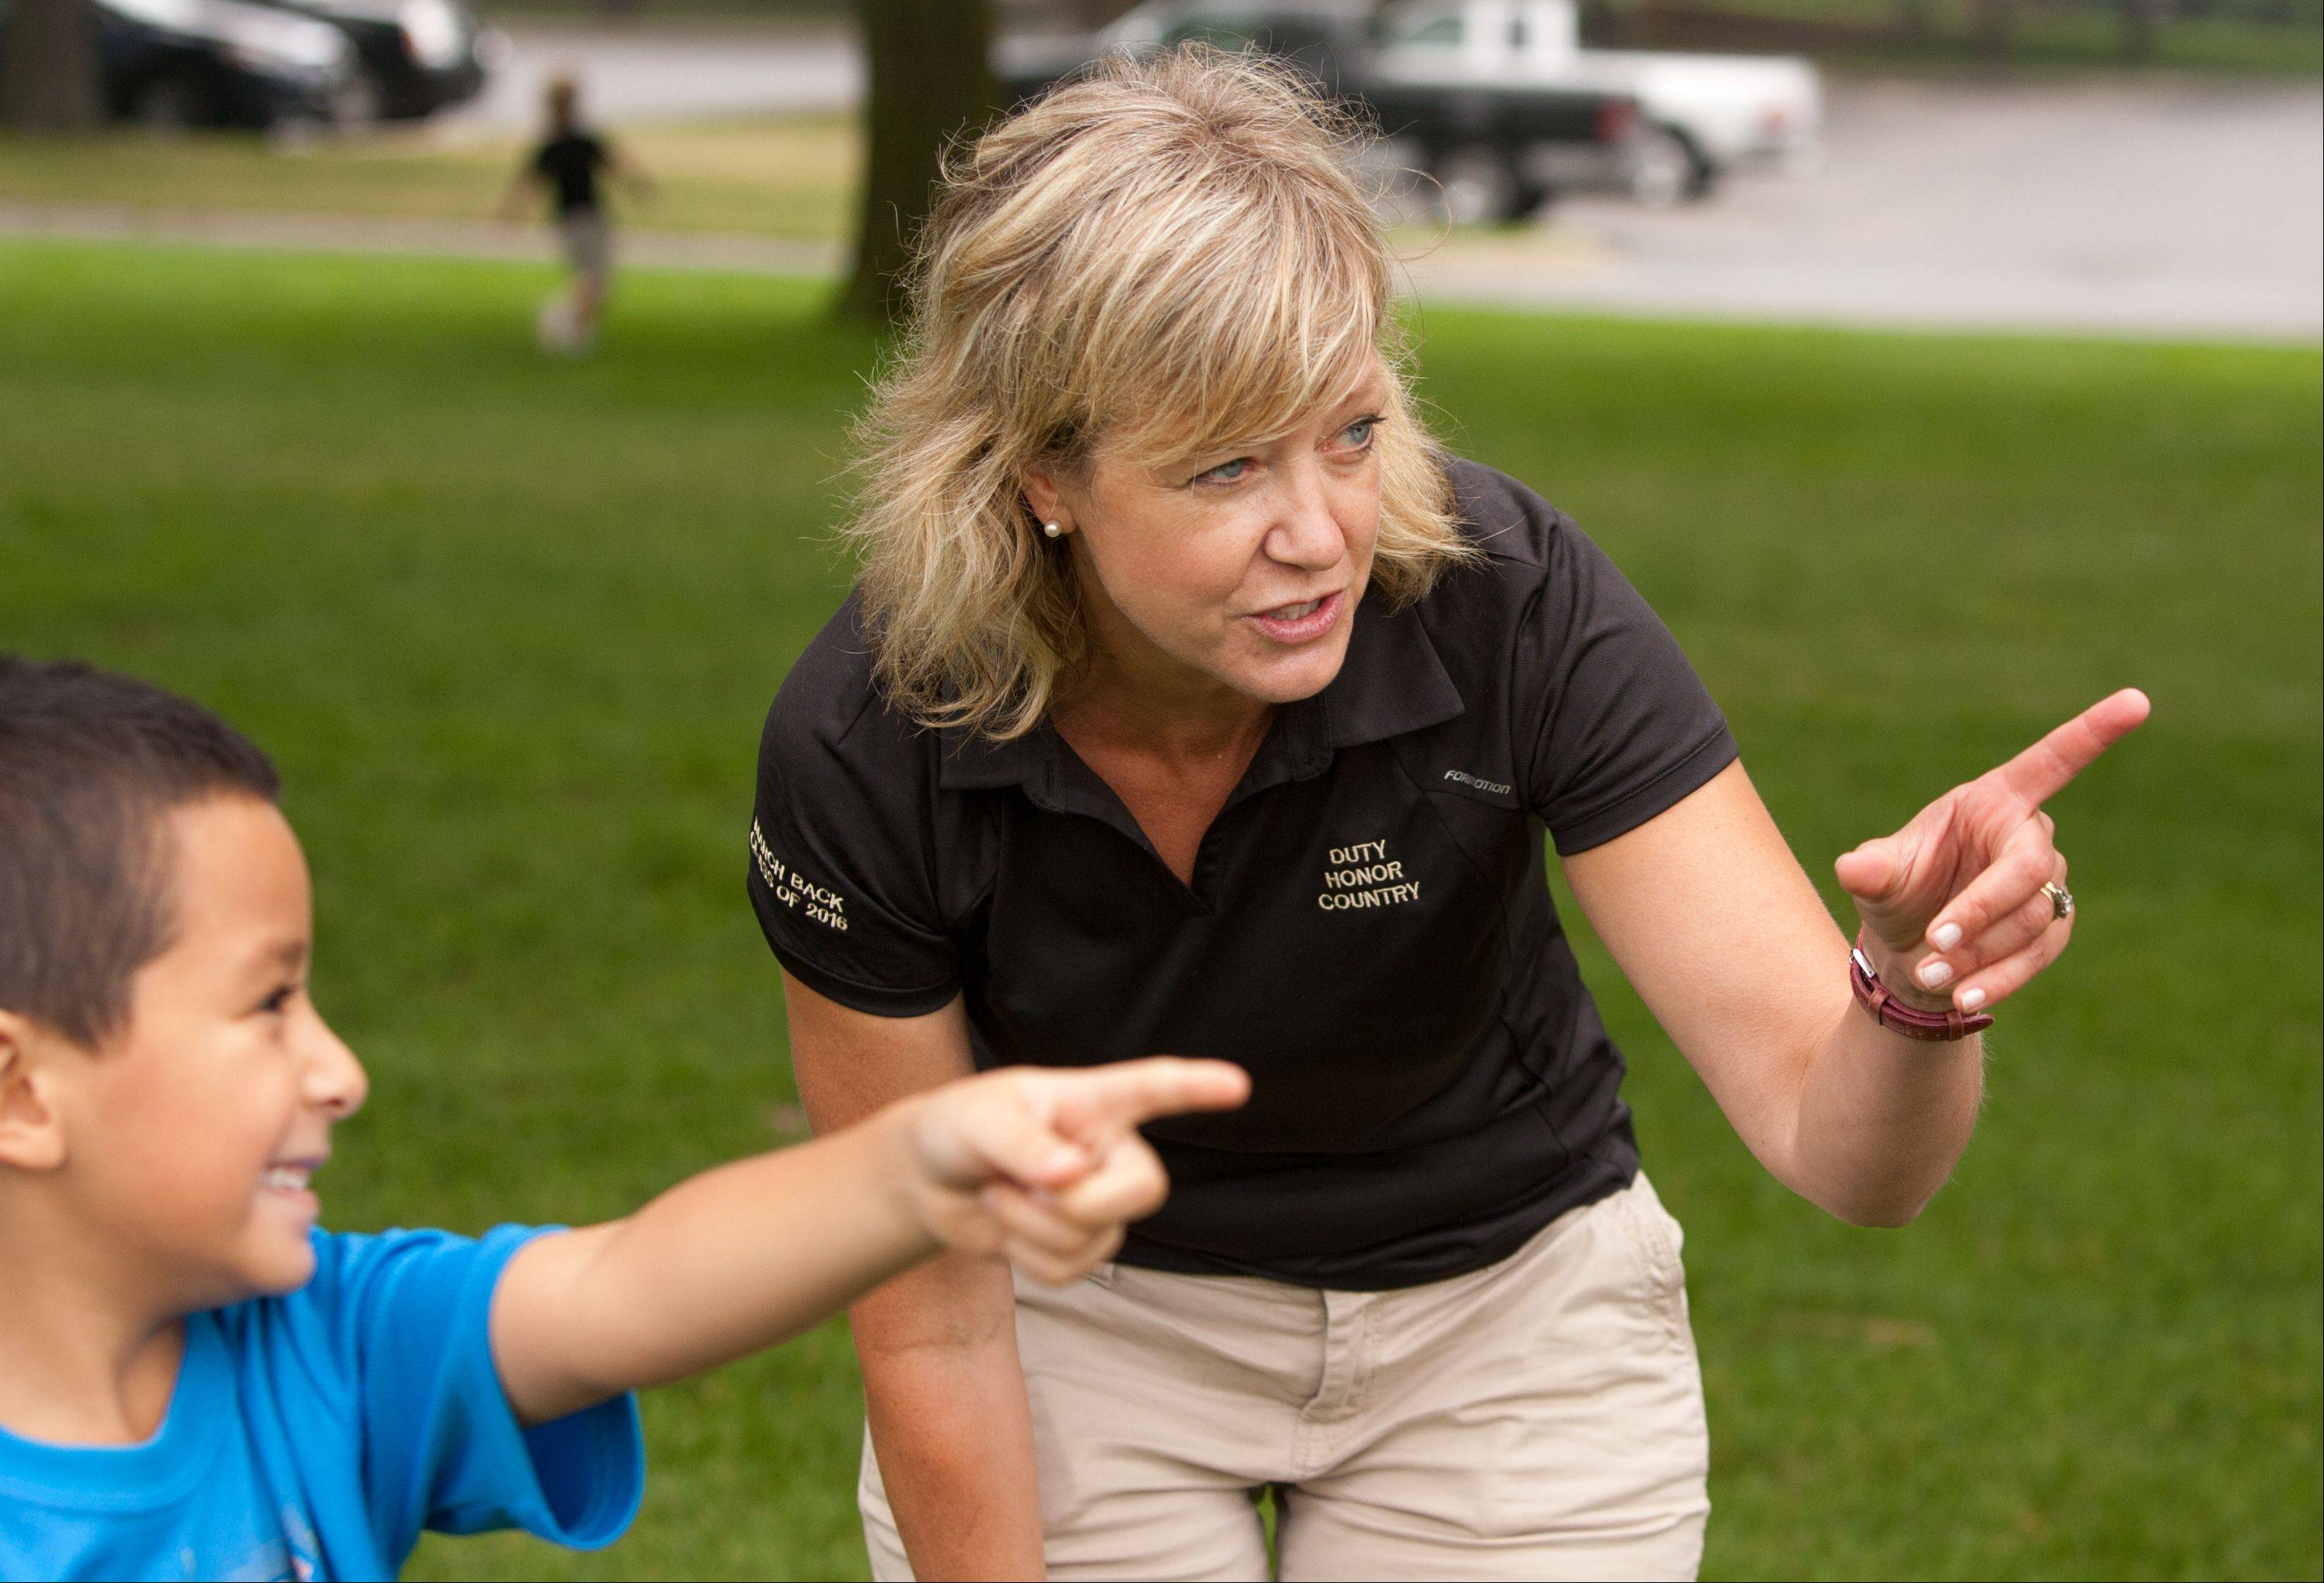 State Rep. Jeanne Ives organized a health and fitness boot camp for children ages 3 through 12 at Cantigny Park in Wheaton. Daniel Guevara, 6, of West Chicago, was one of the participants.